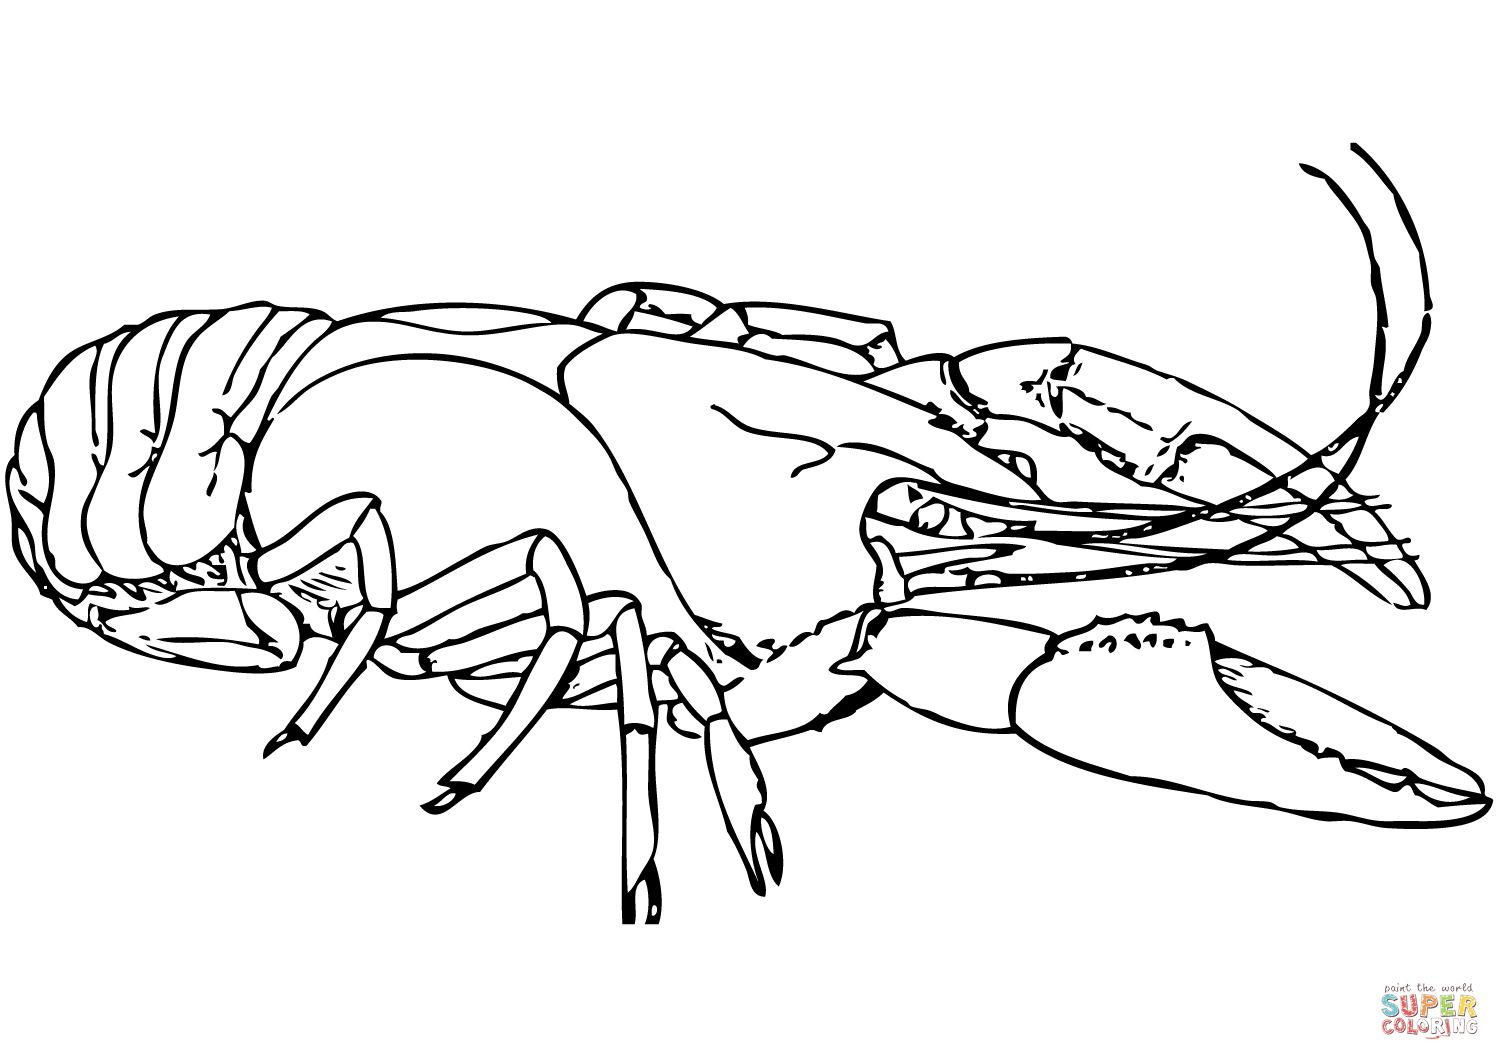 Lobster Coloring Page At Getcolorings